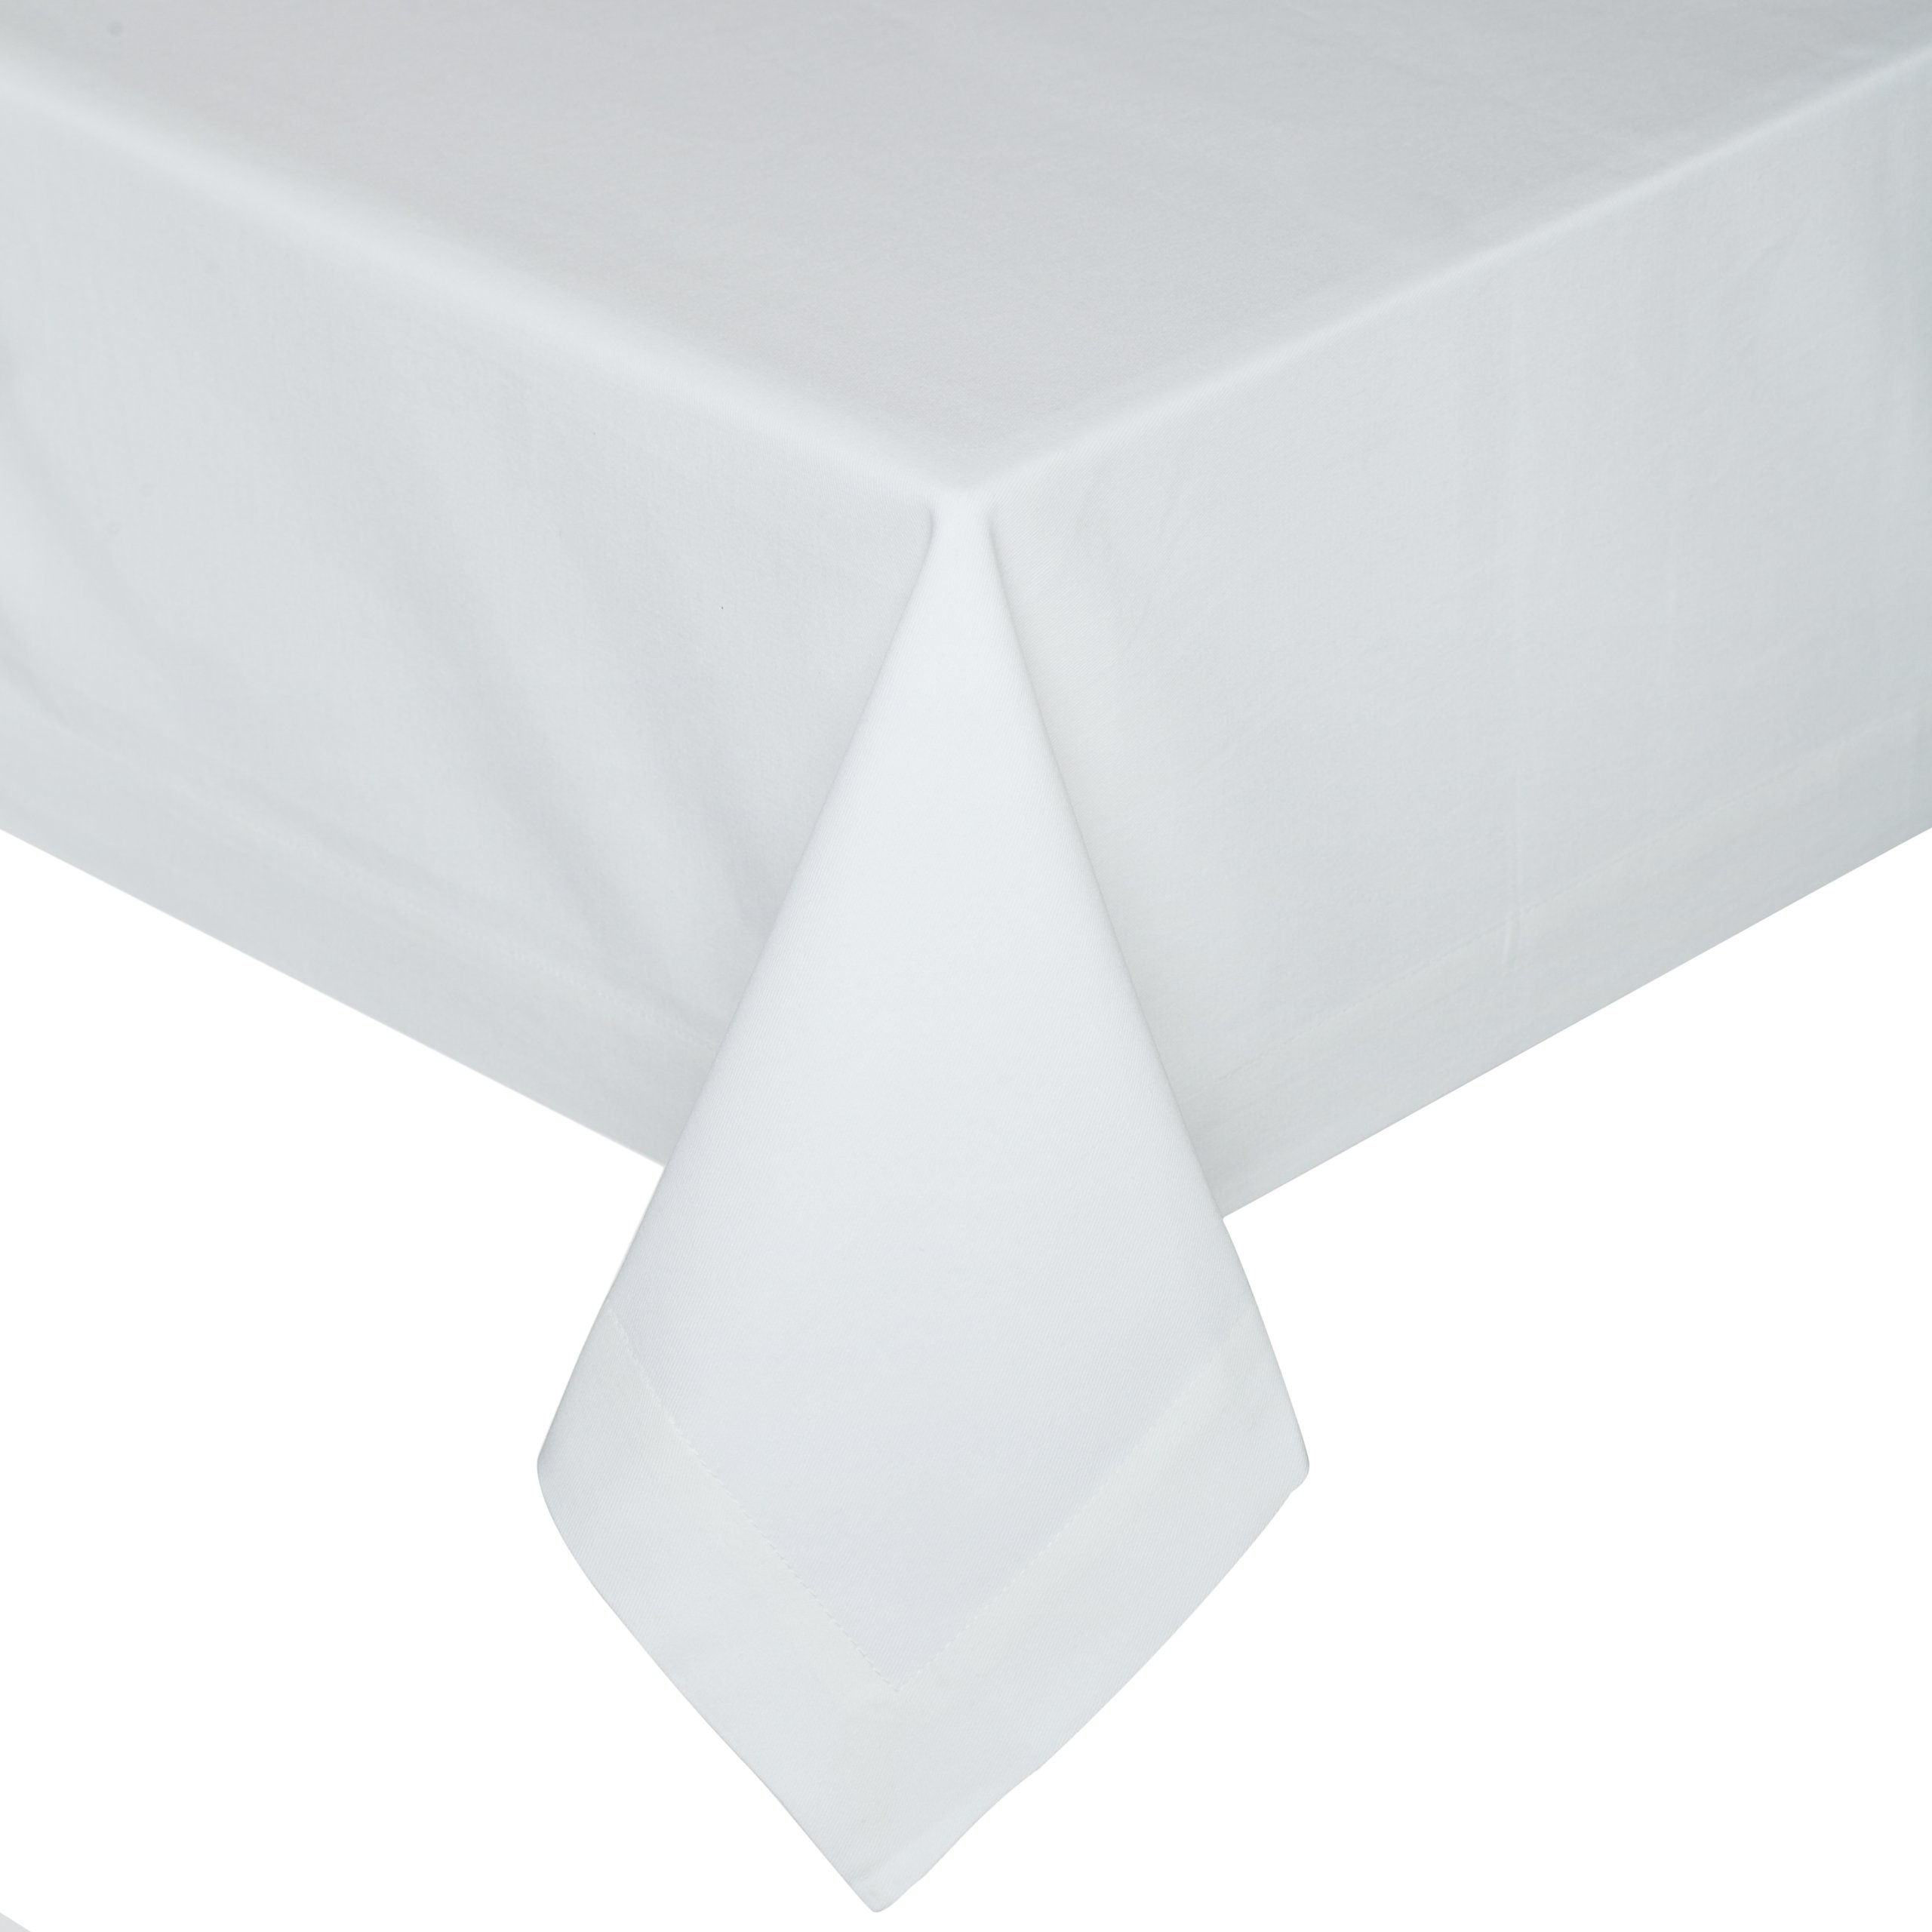 KAF Home Buffet Tablecloth in White, 70'' by 126'', 100% Cotton, Machine Washable